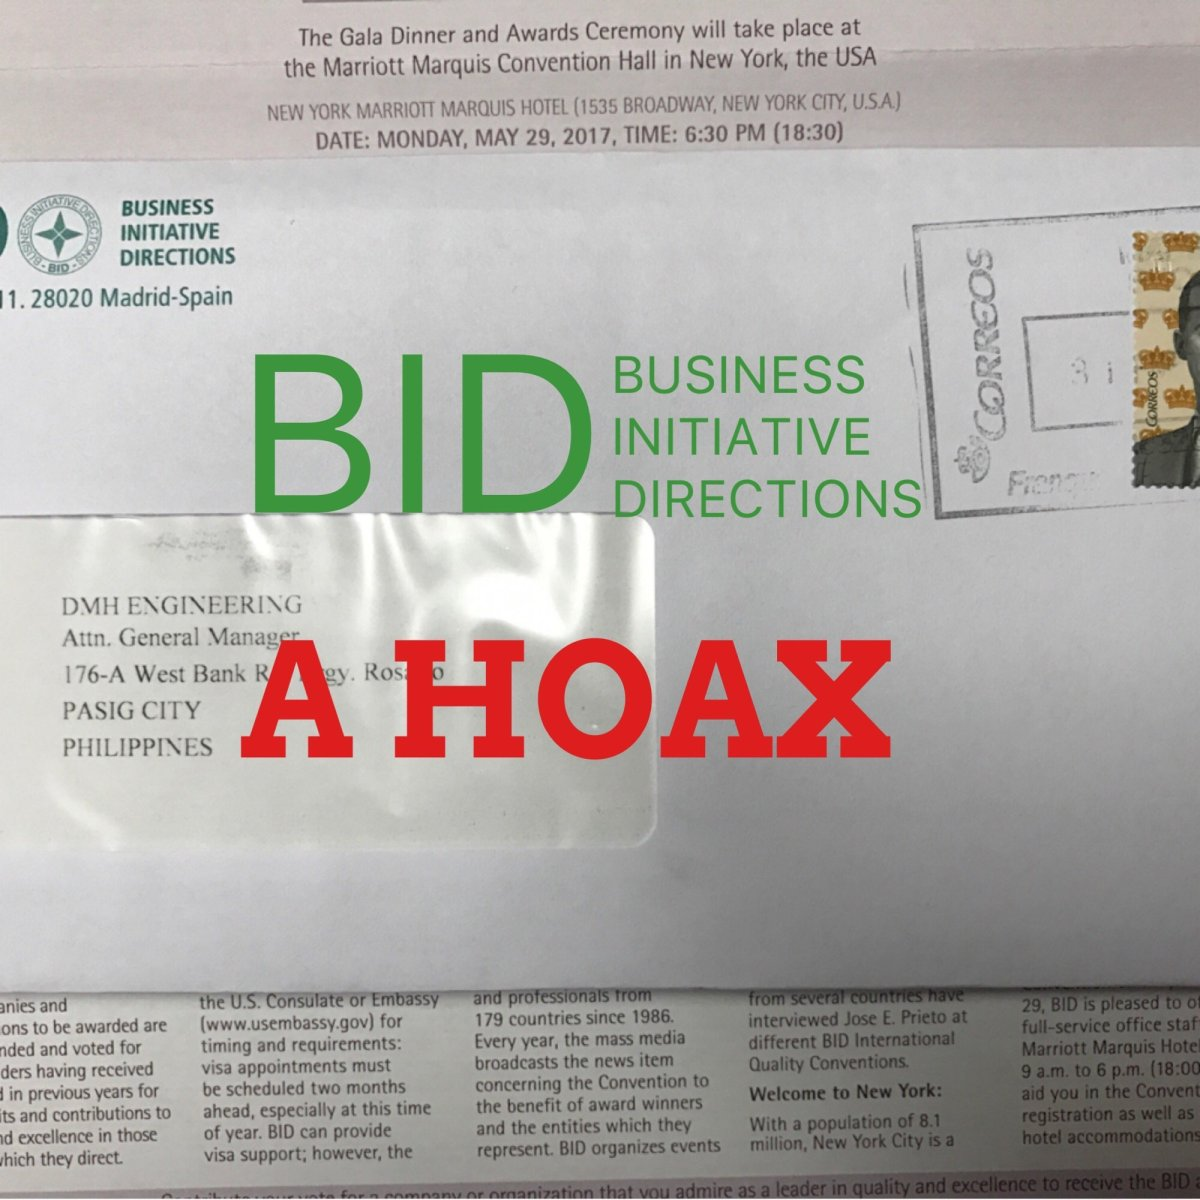 BID Awards in New York - A hoax